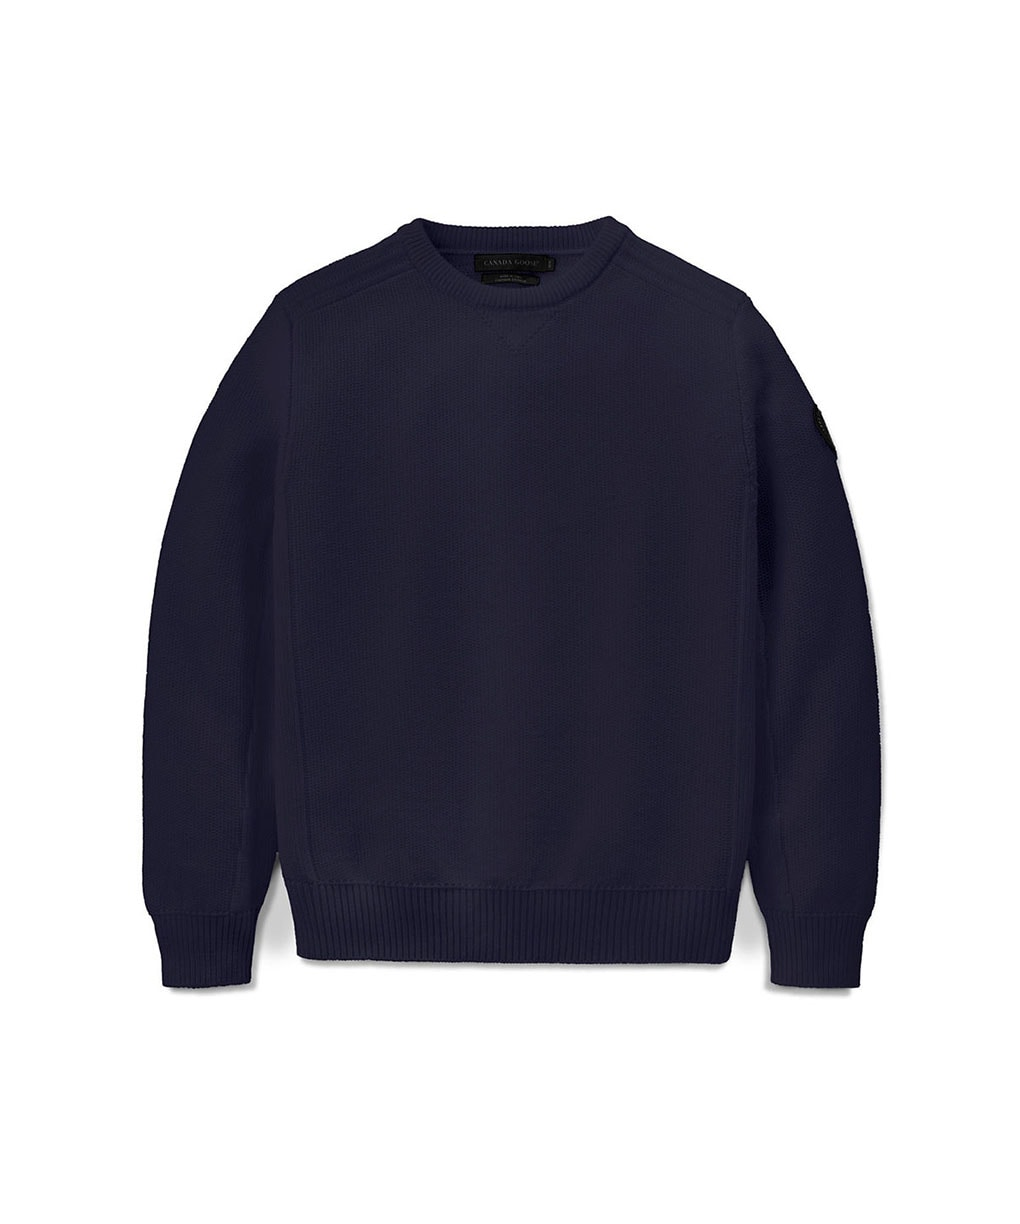 PEMBERTON SWEATER